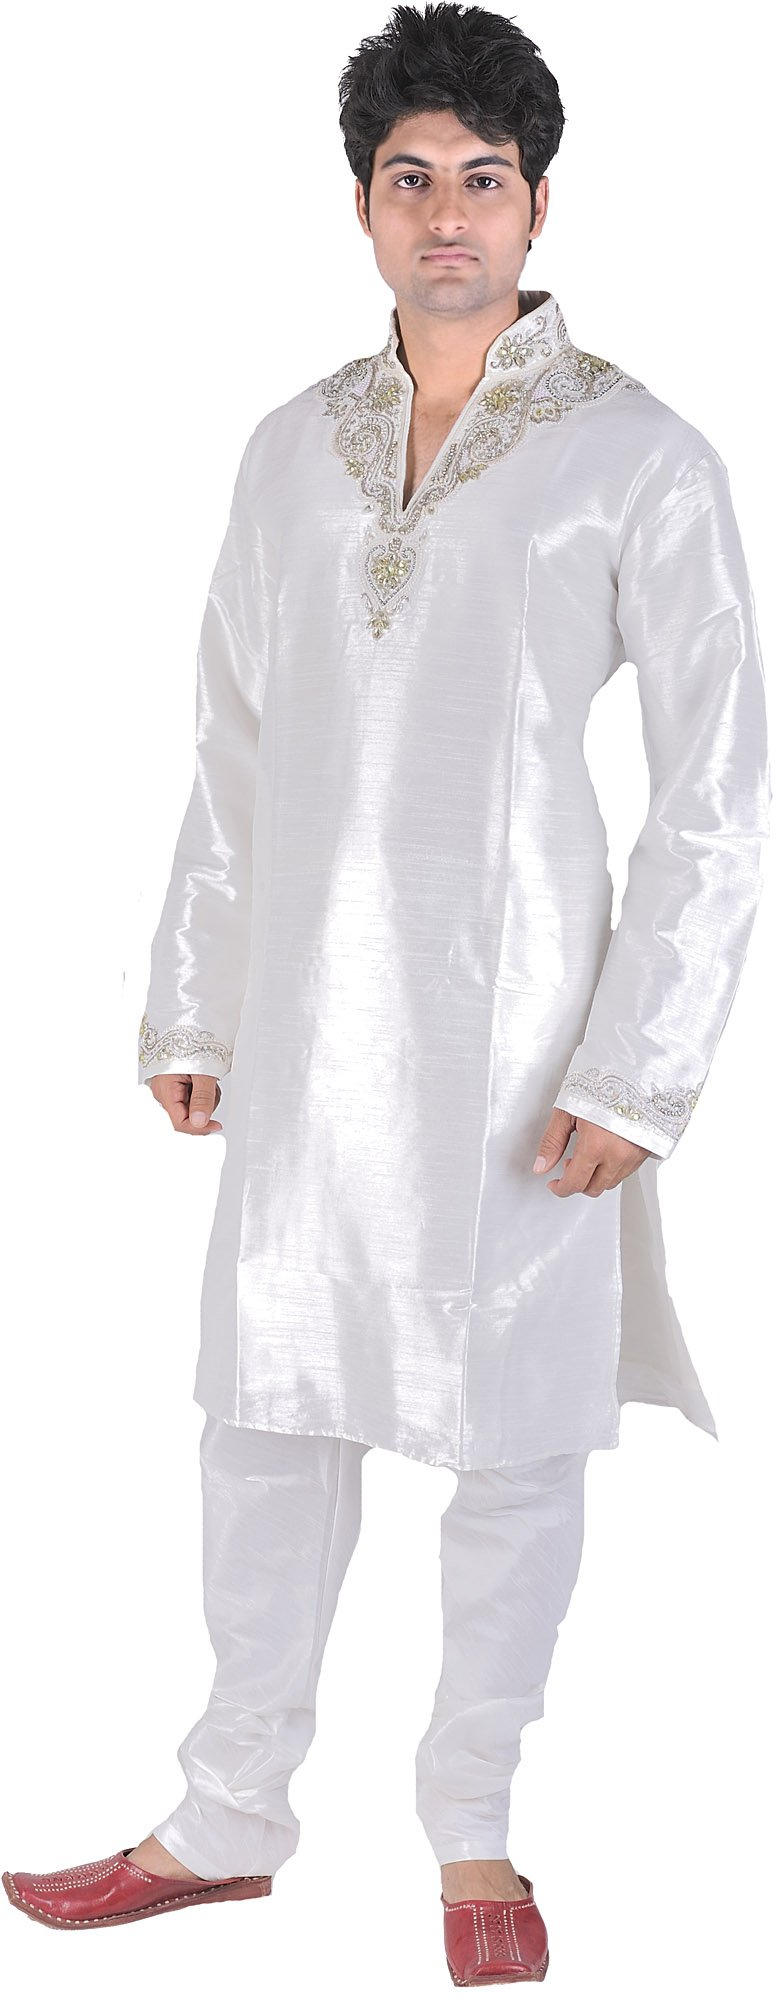 Exotic India White Wedding Kurta Pajama with Beads Embr Size 42